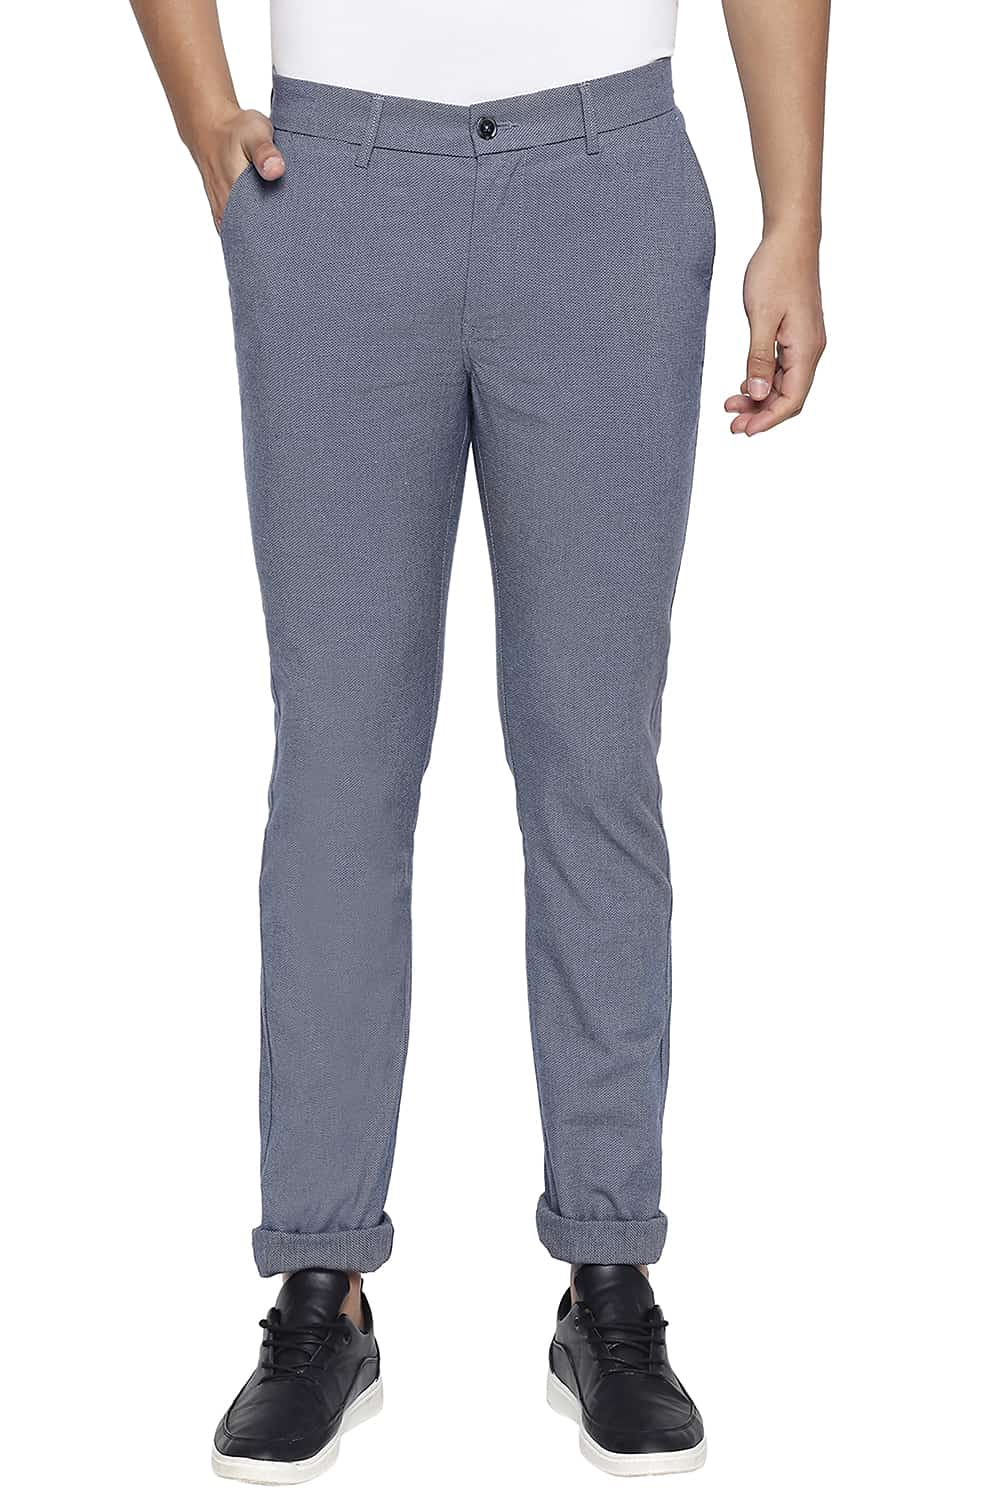 Basics | Basics Tapered Fit Real Teal Navy Stretch Trouser